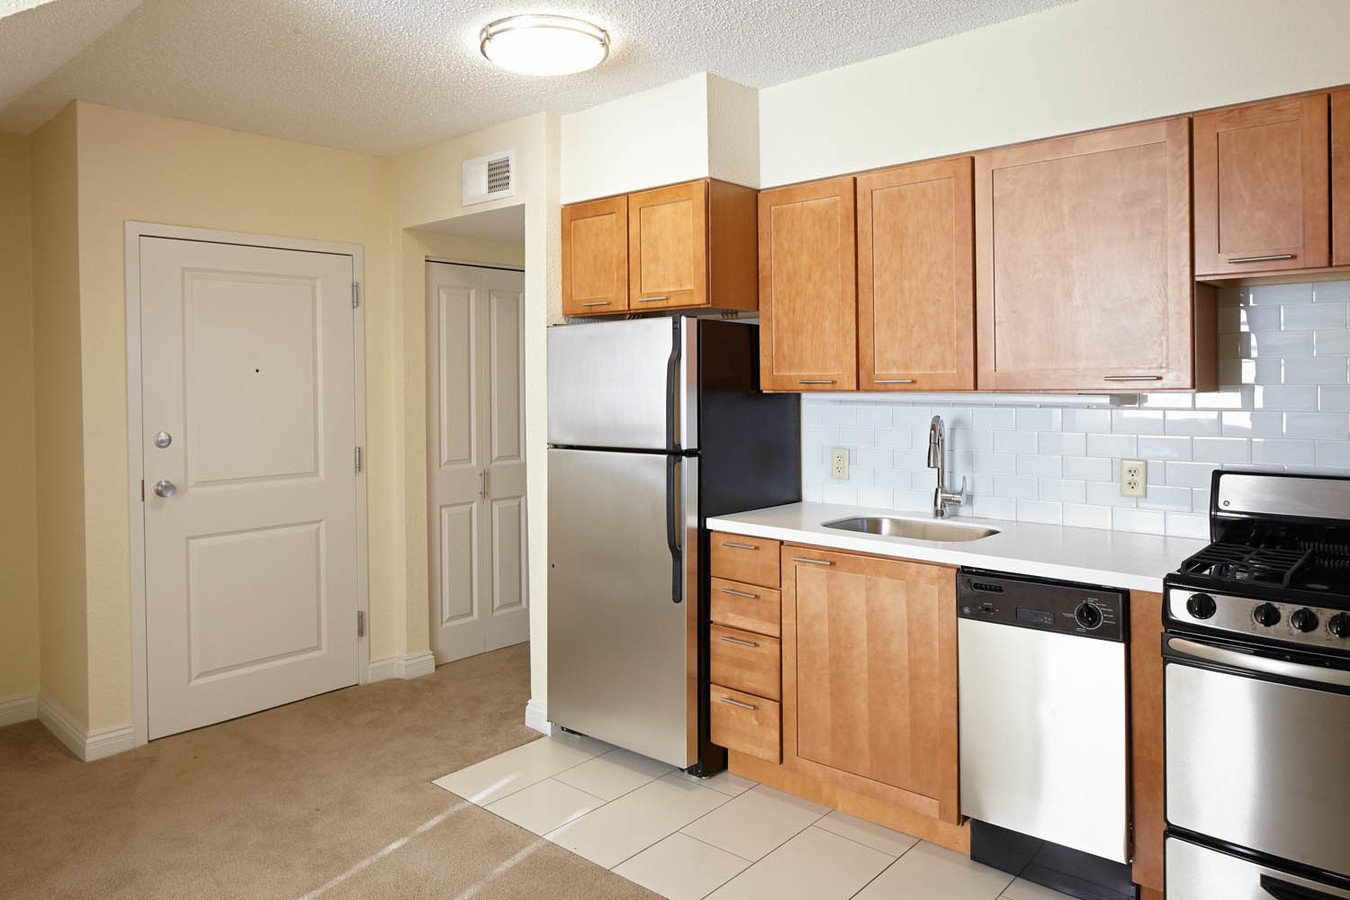 2 Bedrooms 1 Bathroom Apartment for rent at The Duke in Kansas City, MO